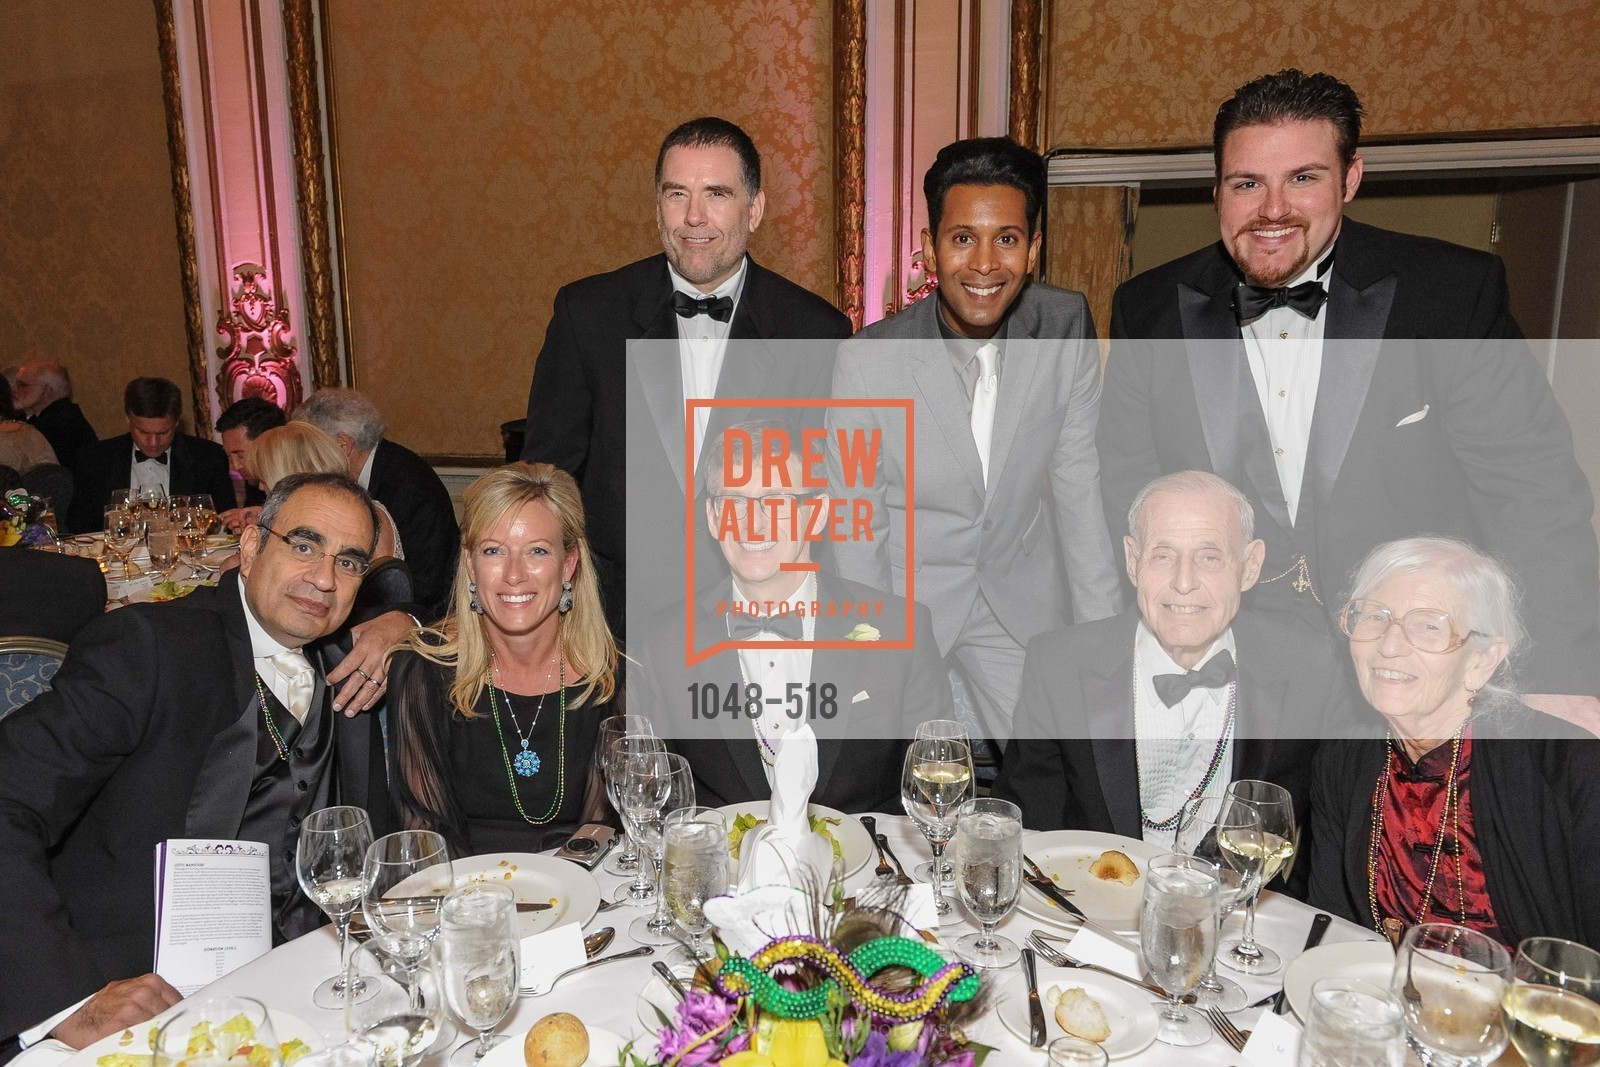 Vinod Mahendroo, Rhonda Mahendroo, Emillio Mesa, Casey Candebot, MEROLA OPERA Spring Benefit 2014:  A Night in New Orleans, US. Fairmont, April 12th, 2014,Drew Altizer, Drew Altizer Photography, full-service agency, private events, San Francisco photographer, photographer california